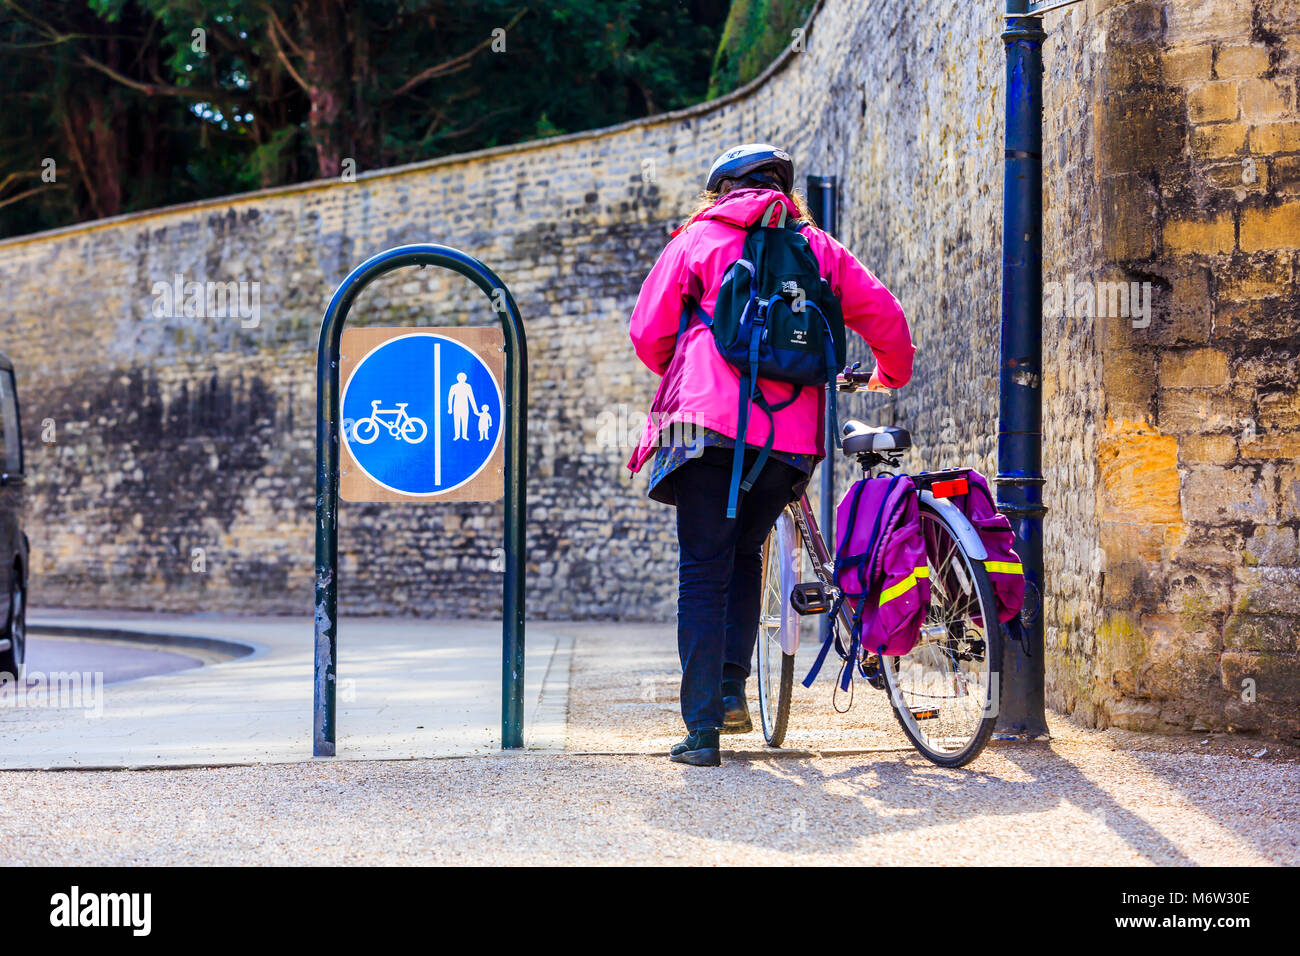 A cyclist having to dismount and walk through a passage. - Stock Image